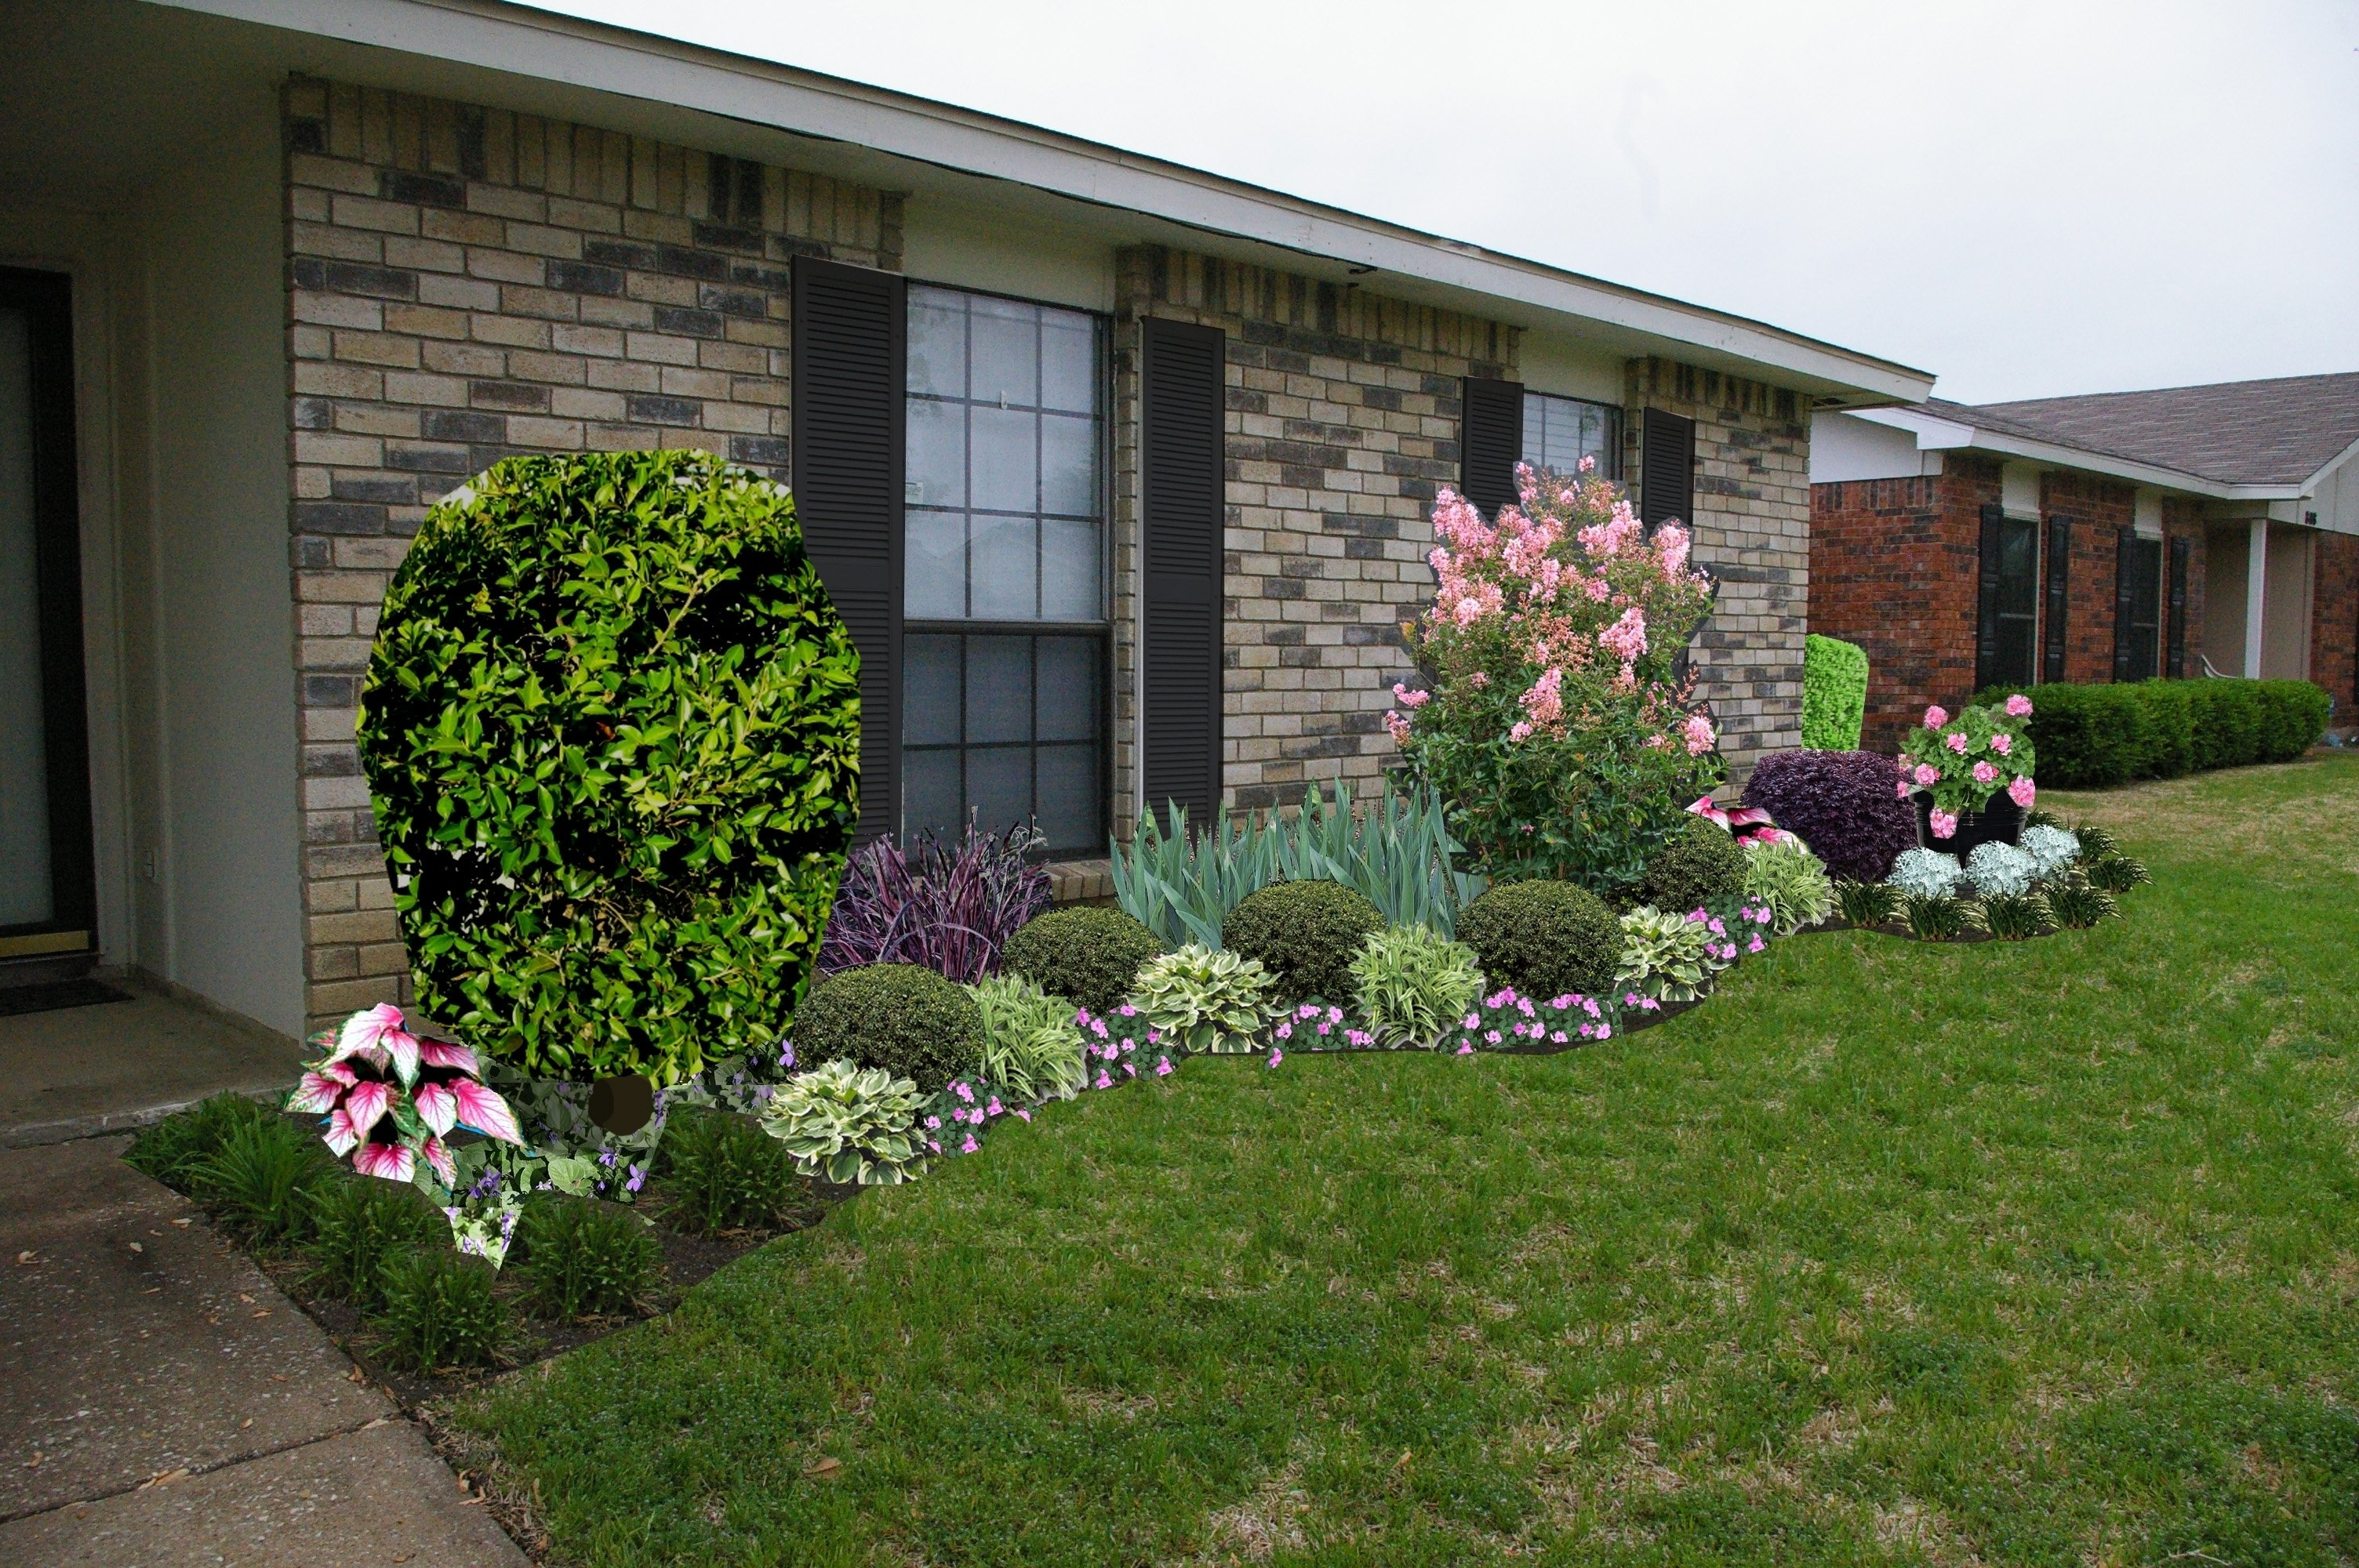 10 Lovely Landscaping Ideas For Front Yards garden front yard landscaping ideas front yard landscape ideas 2 2021